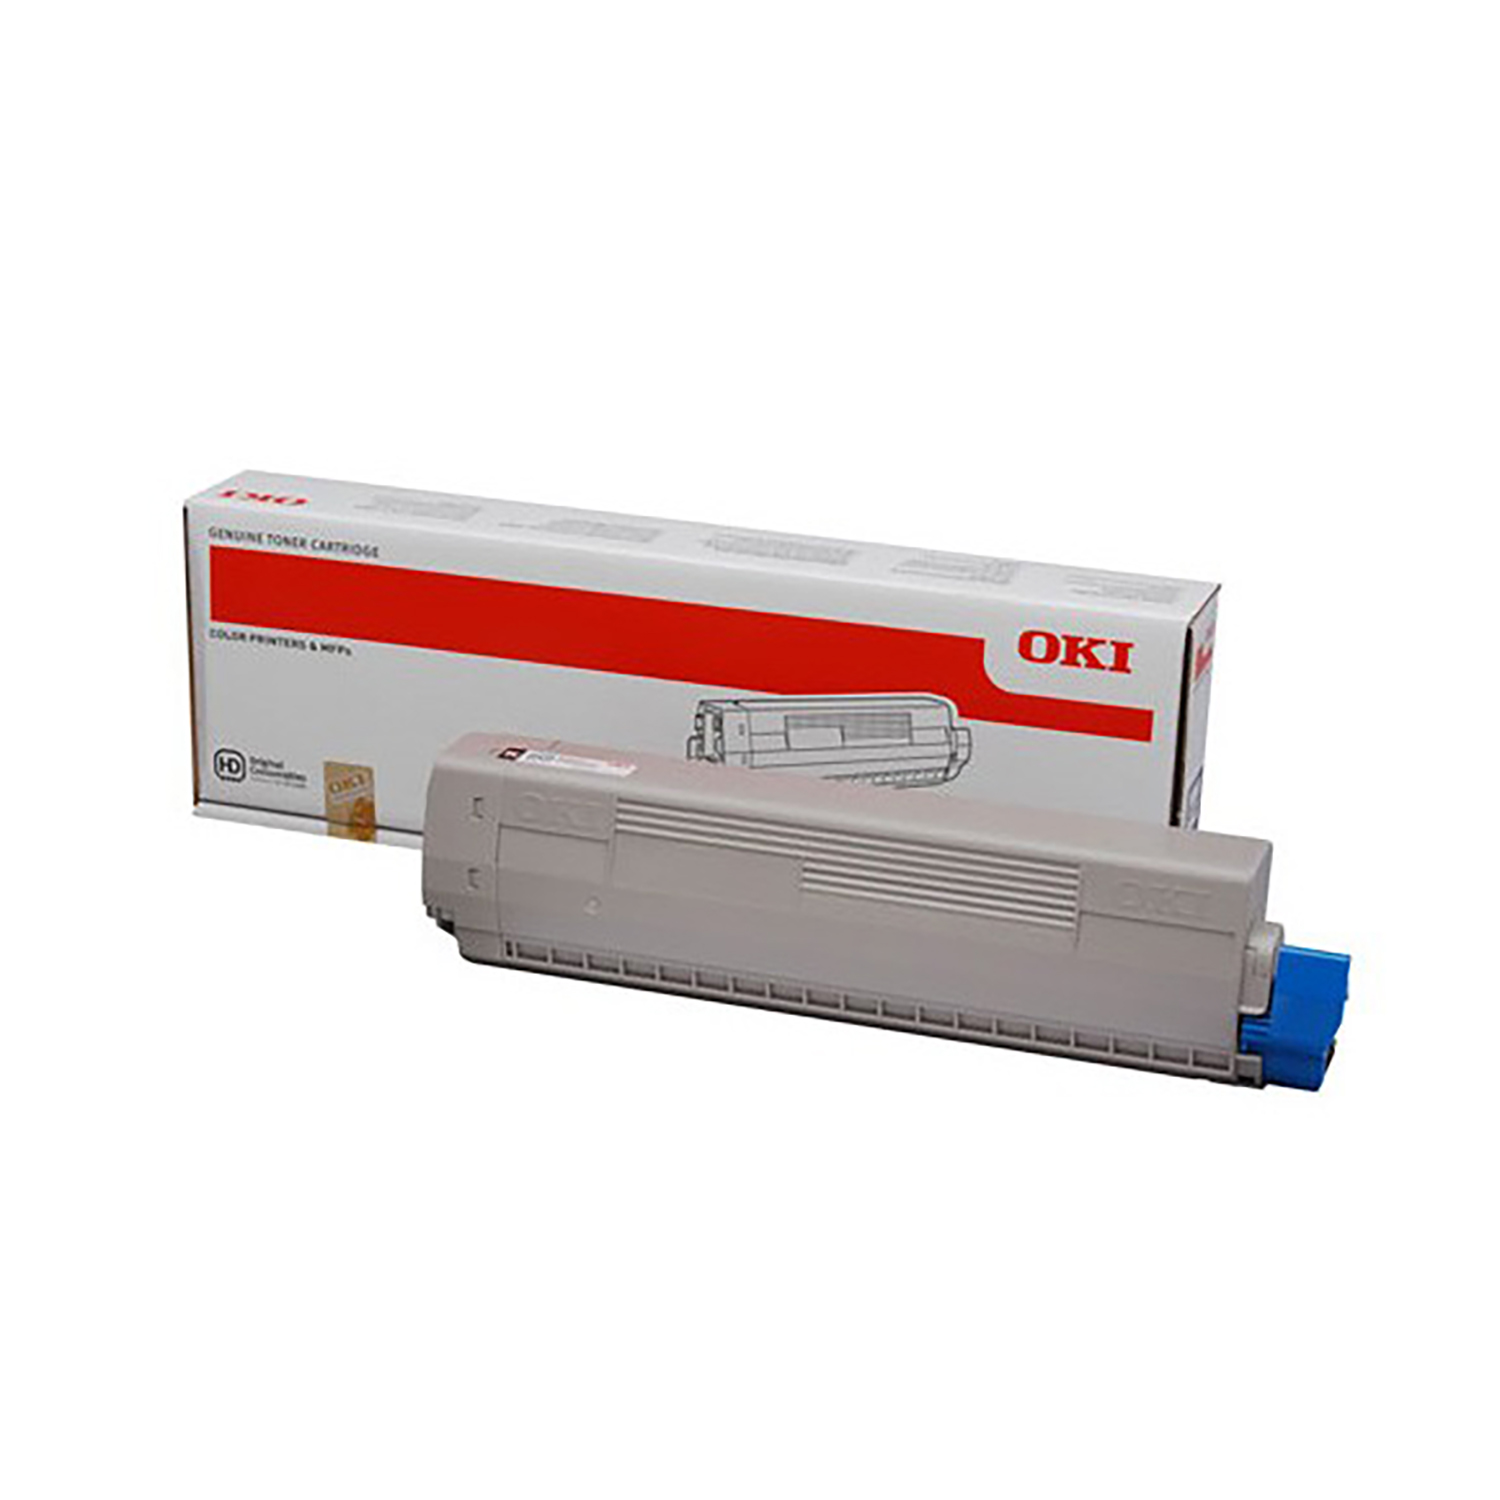 Oki C332/MC363 Laser Toner Cartridge High Yield Page Life 3000pp Cyan Ref 46508711